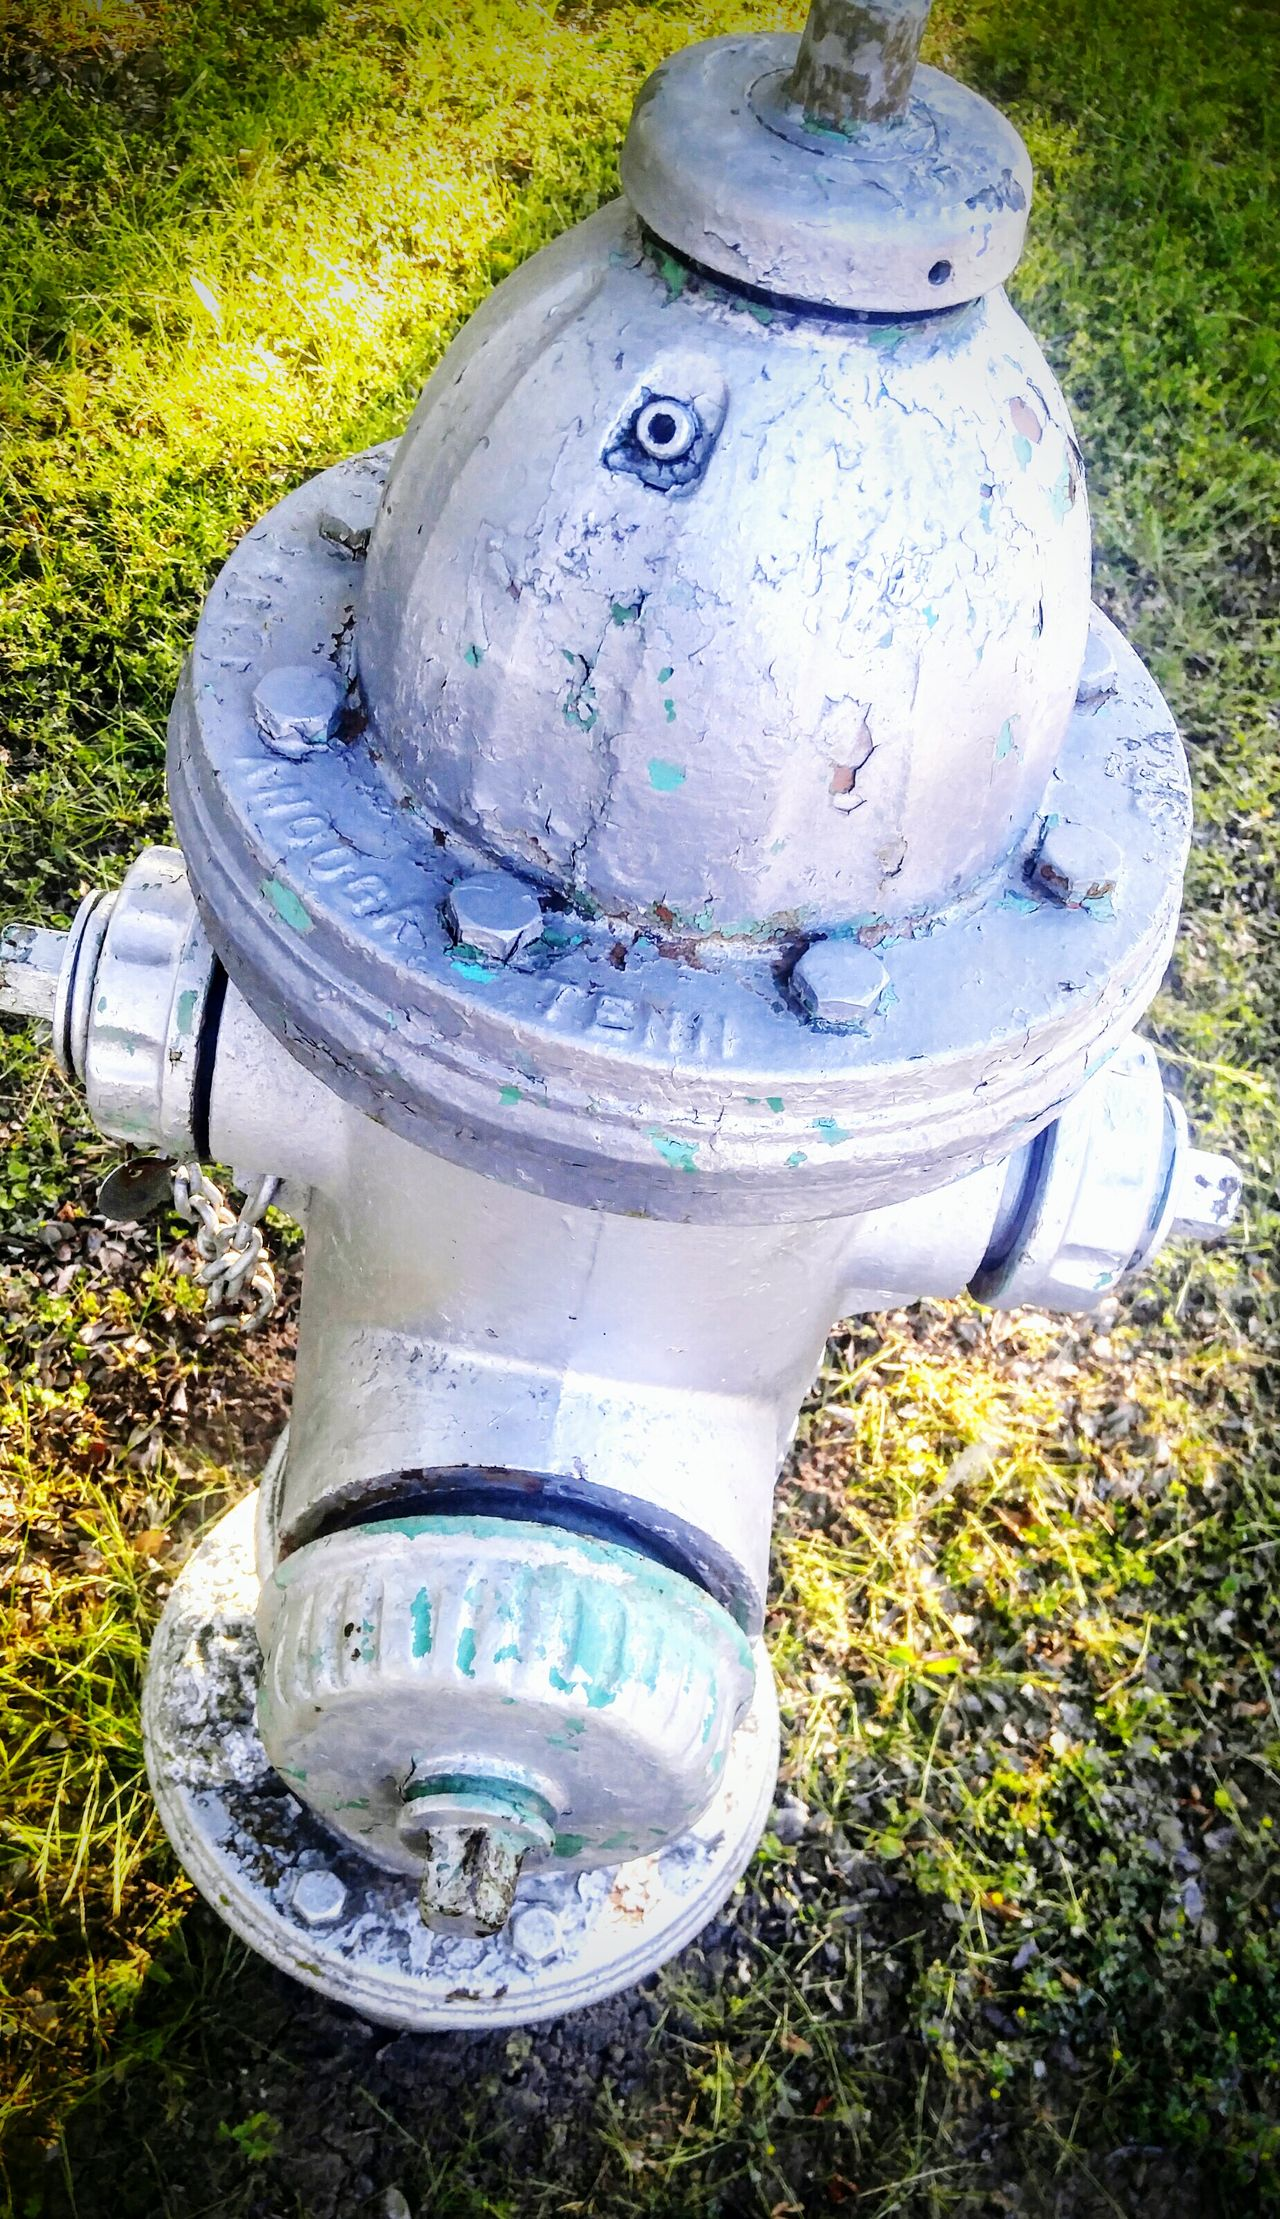 Outdoors High Angle View Grass No People Fire Hydrant Day Field Lid Blue Close-up Flushing Toilet Metal The Street Photographer - 2017 EyeEm Awards